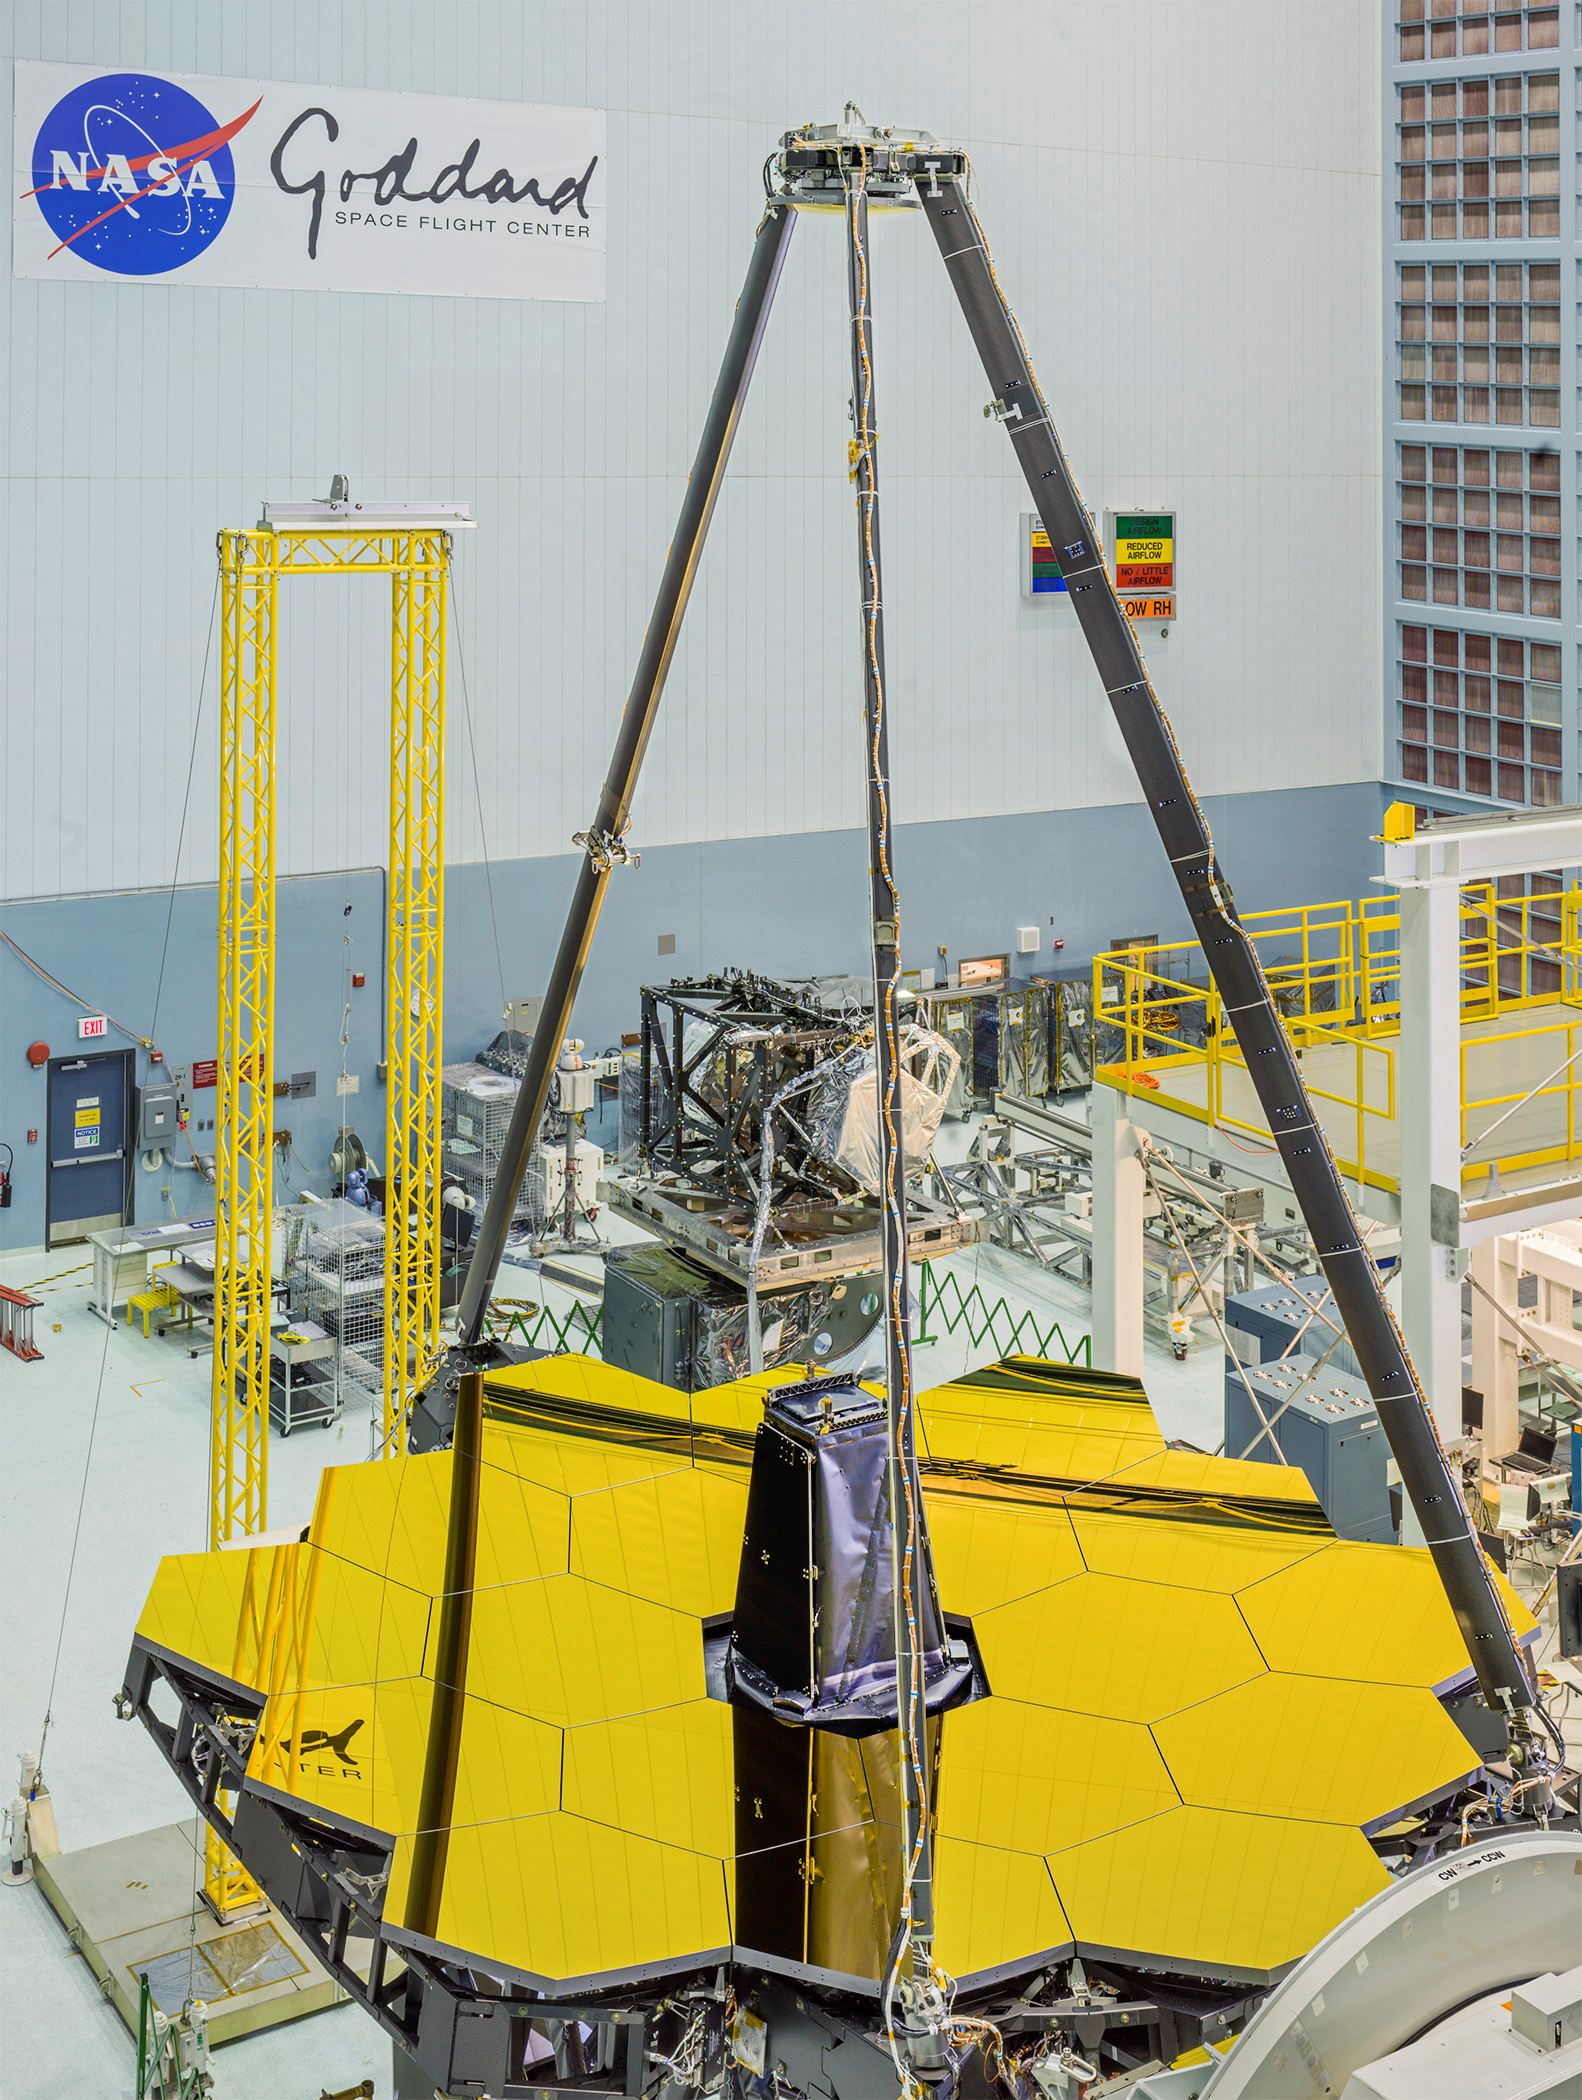 On 27 April 2016, engineers unveiled the giant golden mirror of NASA's James Webb Space Telescope as part of the integration and testing of the infrared telescope at NASA's Goddard Space Flight Center, Greenbelt, Maryland. Click the image for a full-size version. Image credits: NASA/Chris Gunn.